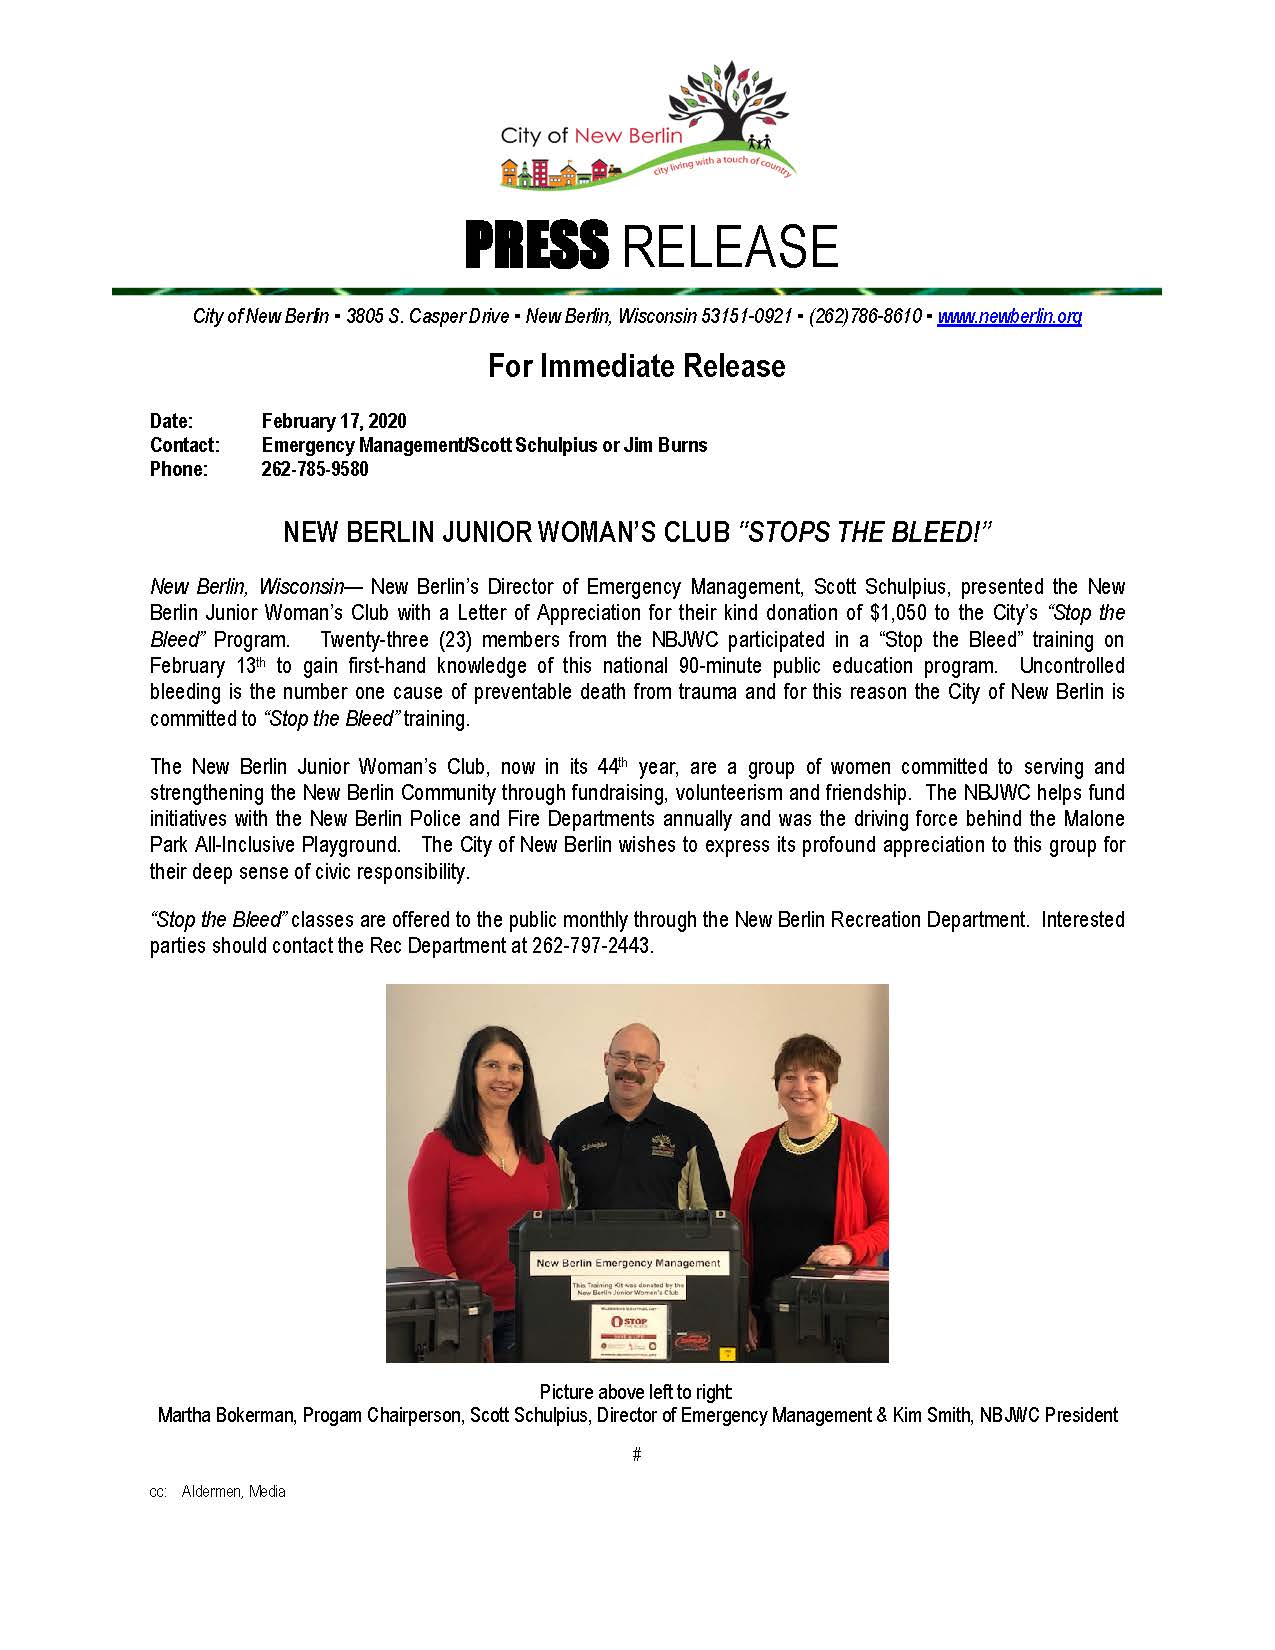 Press Release - NBJWC -Stop the Bleed